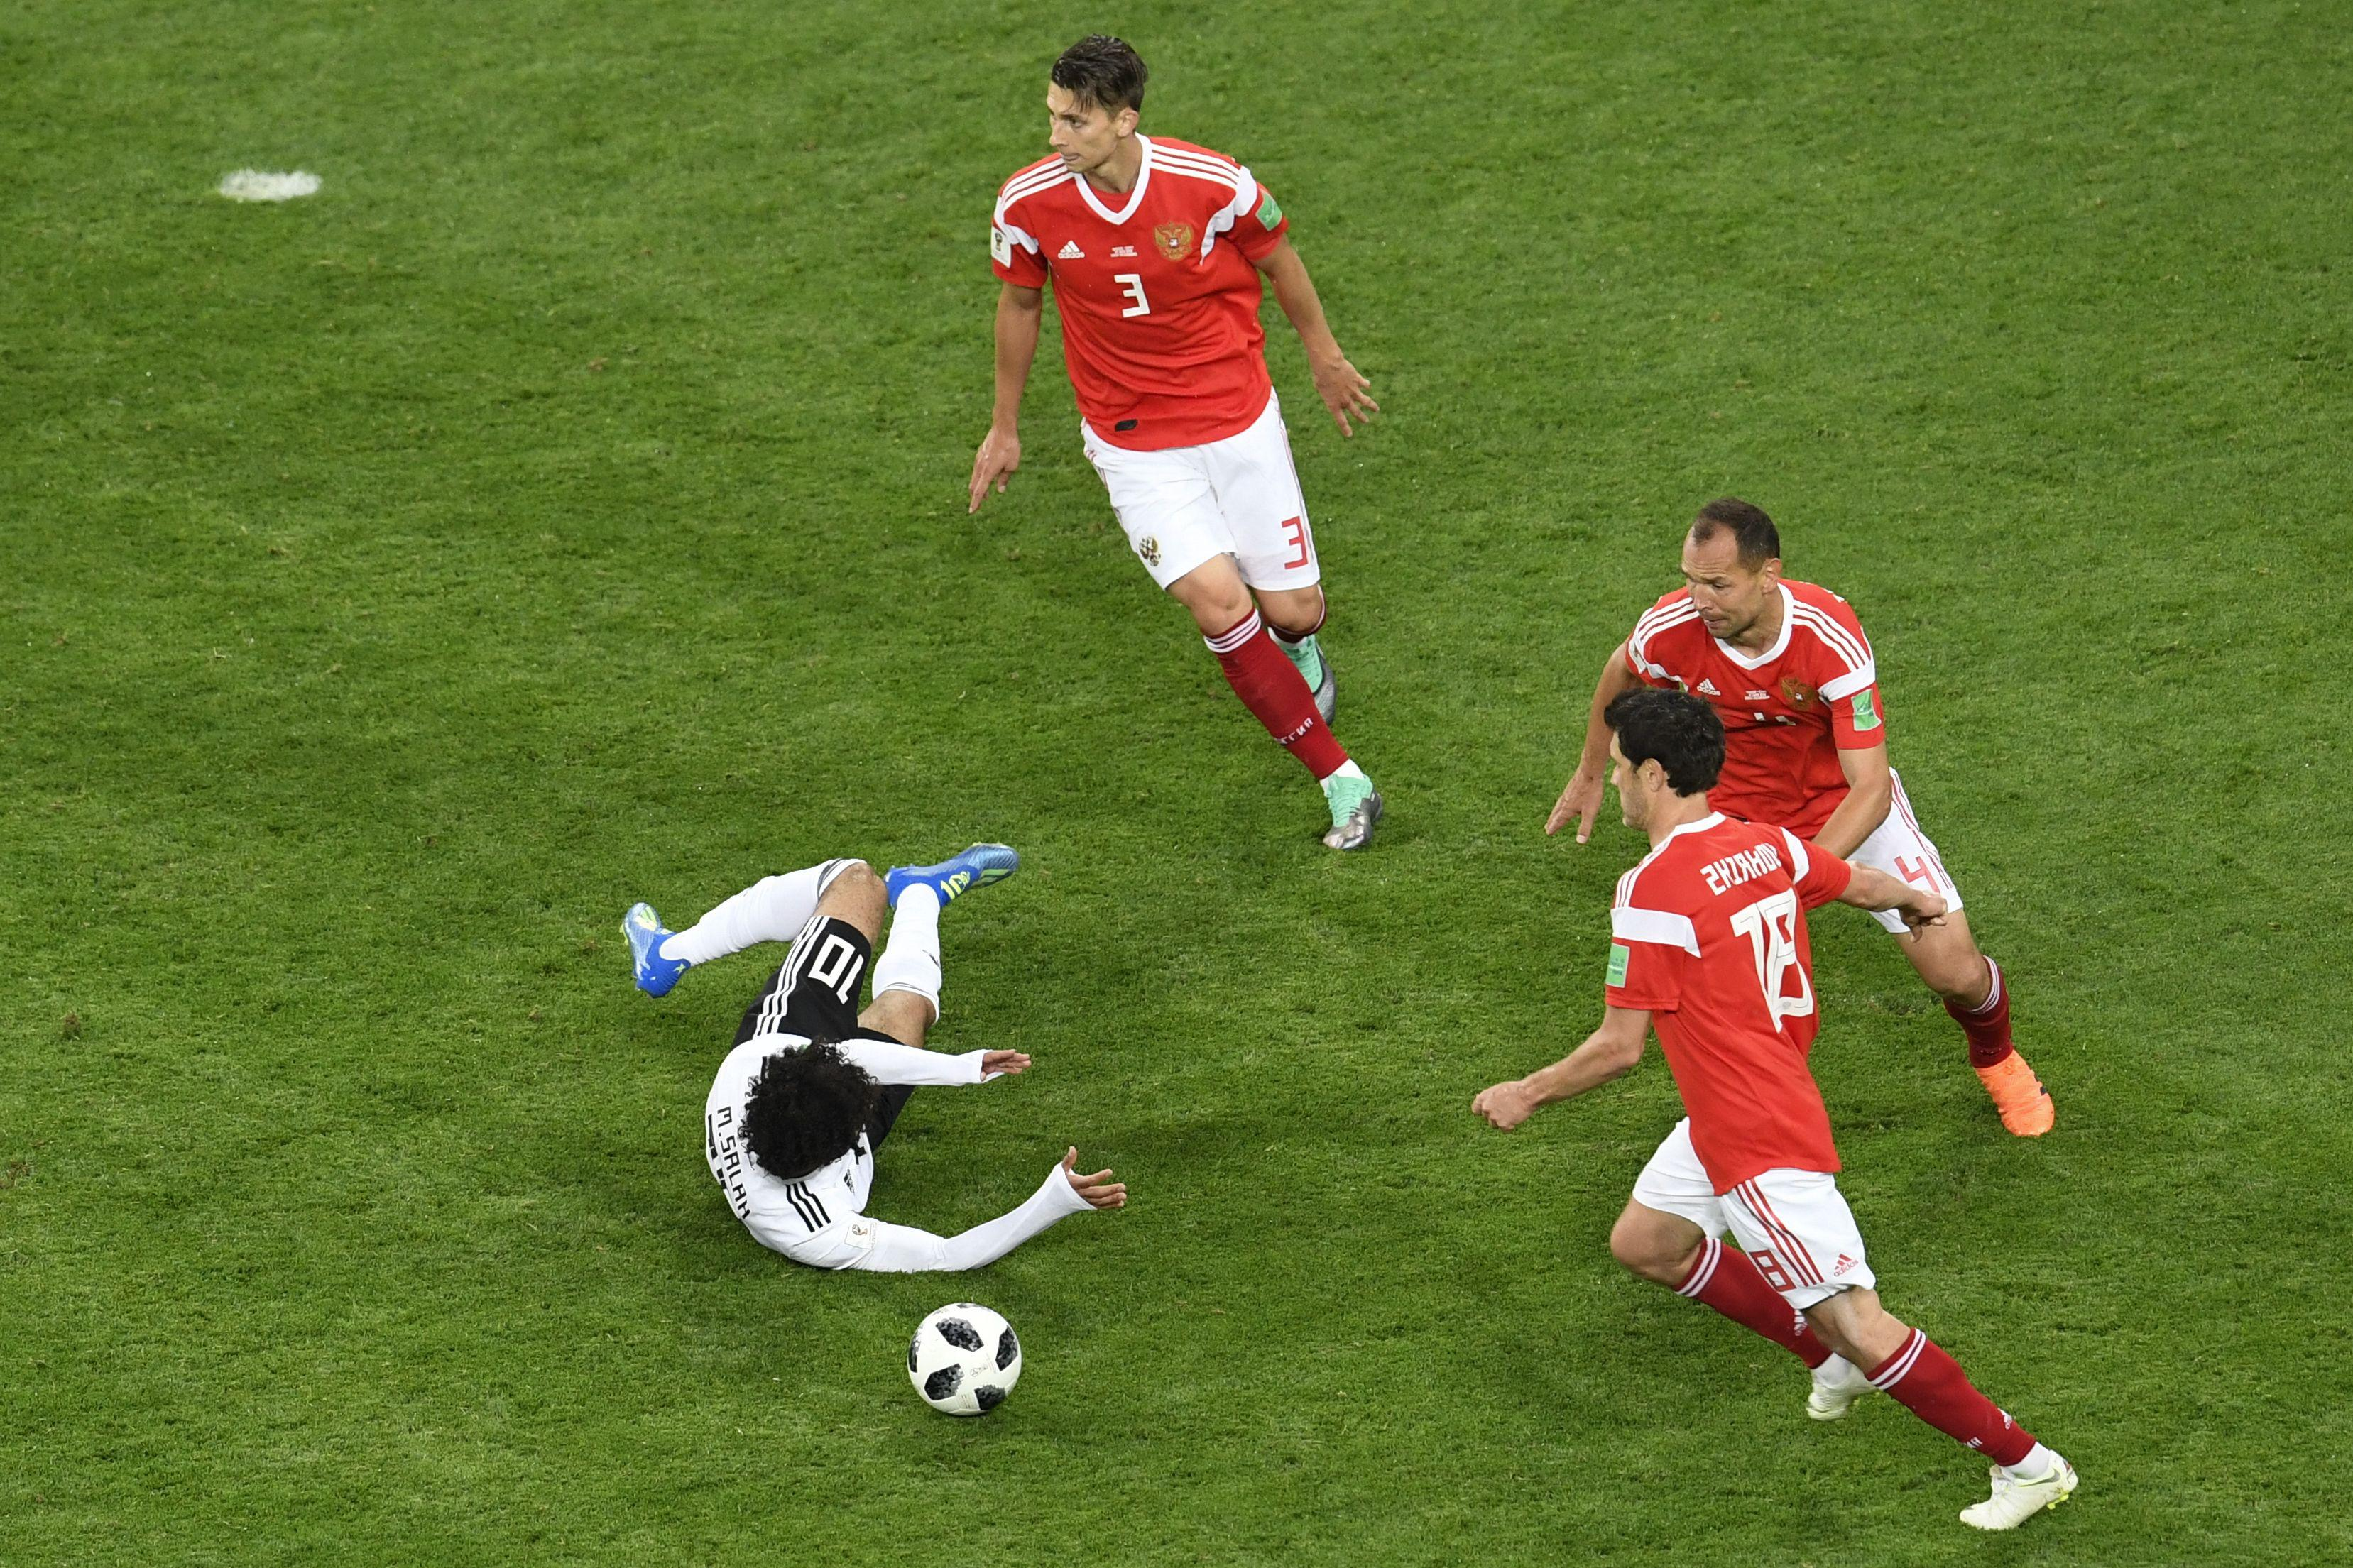 Egypt's forward Mohamed Salah falls to the ground after being fouled during the World Cup.